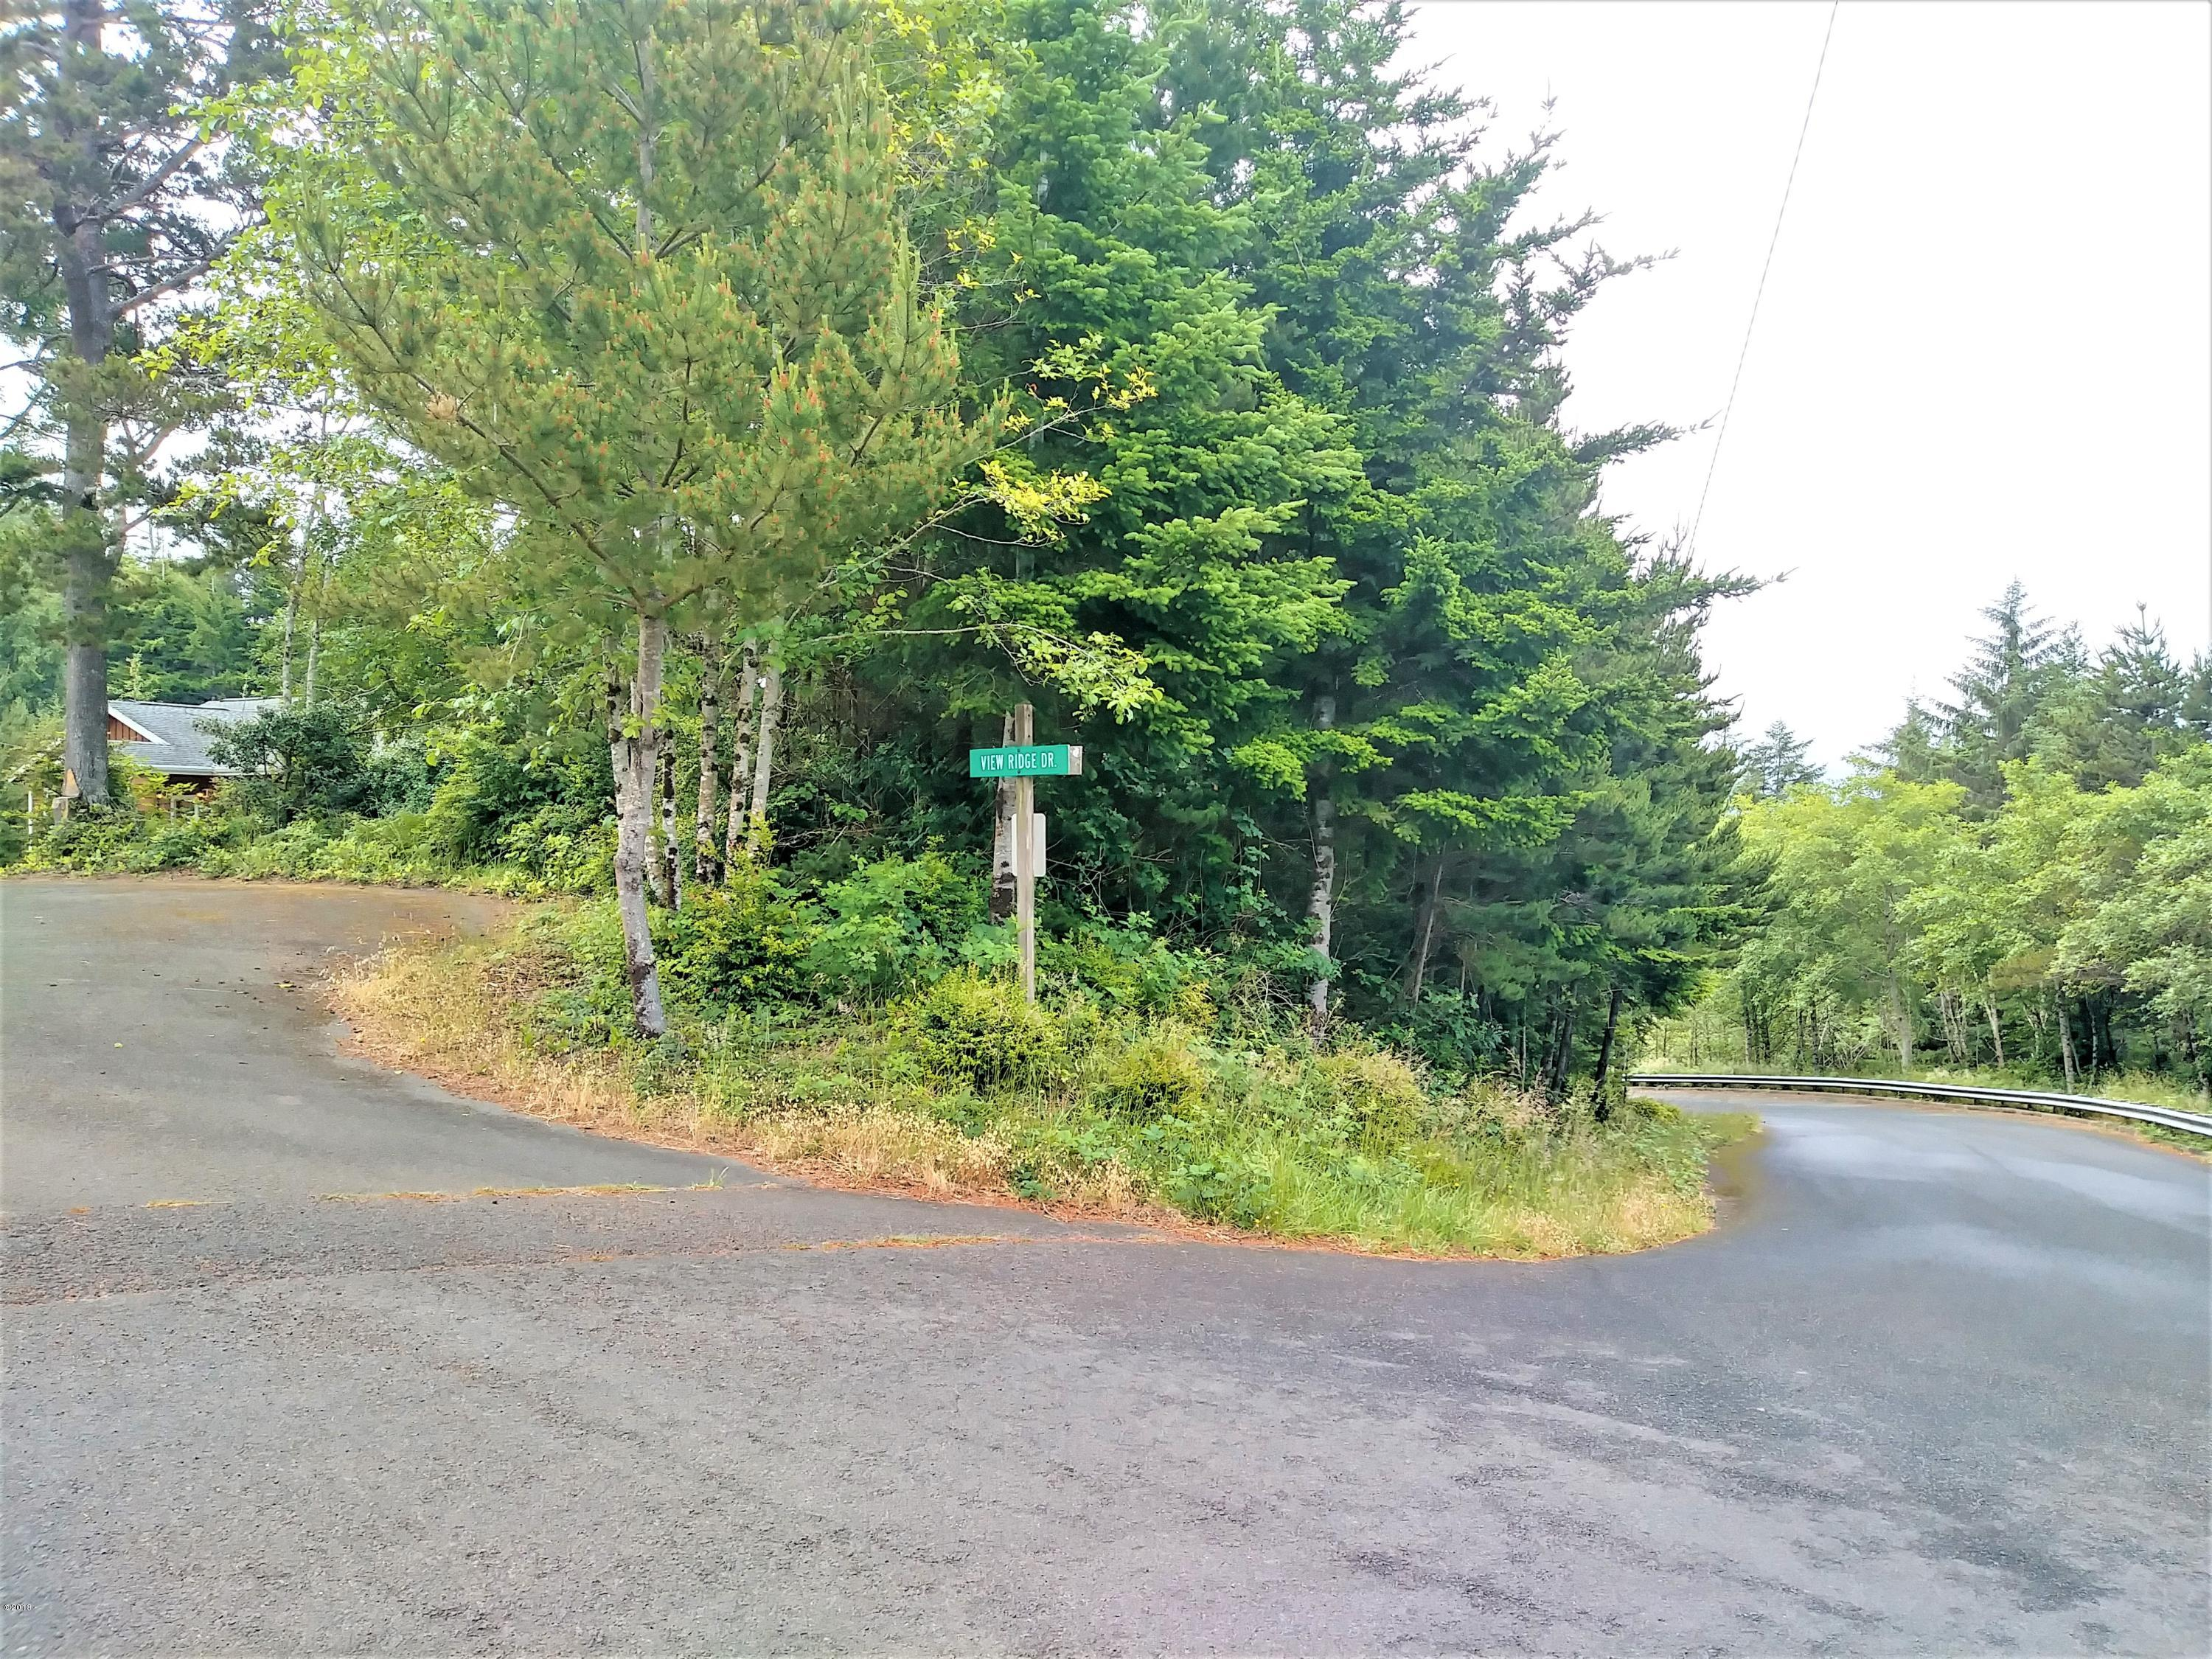 1005 NW Salal Dr, Waldport, OR 97376 - 20180621_095842_HDR